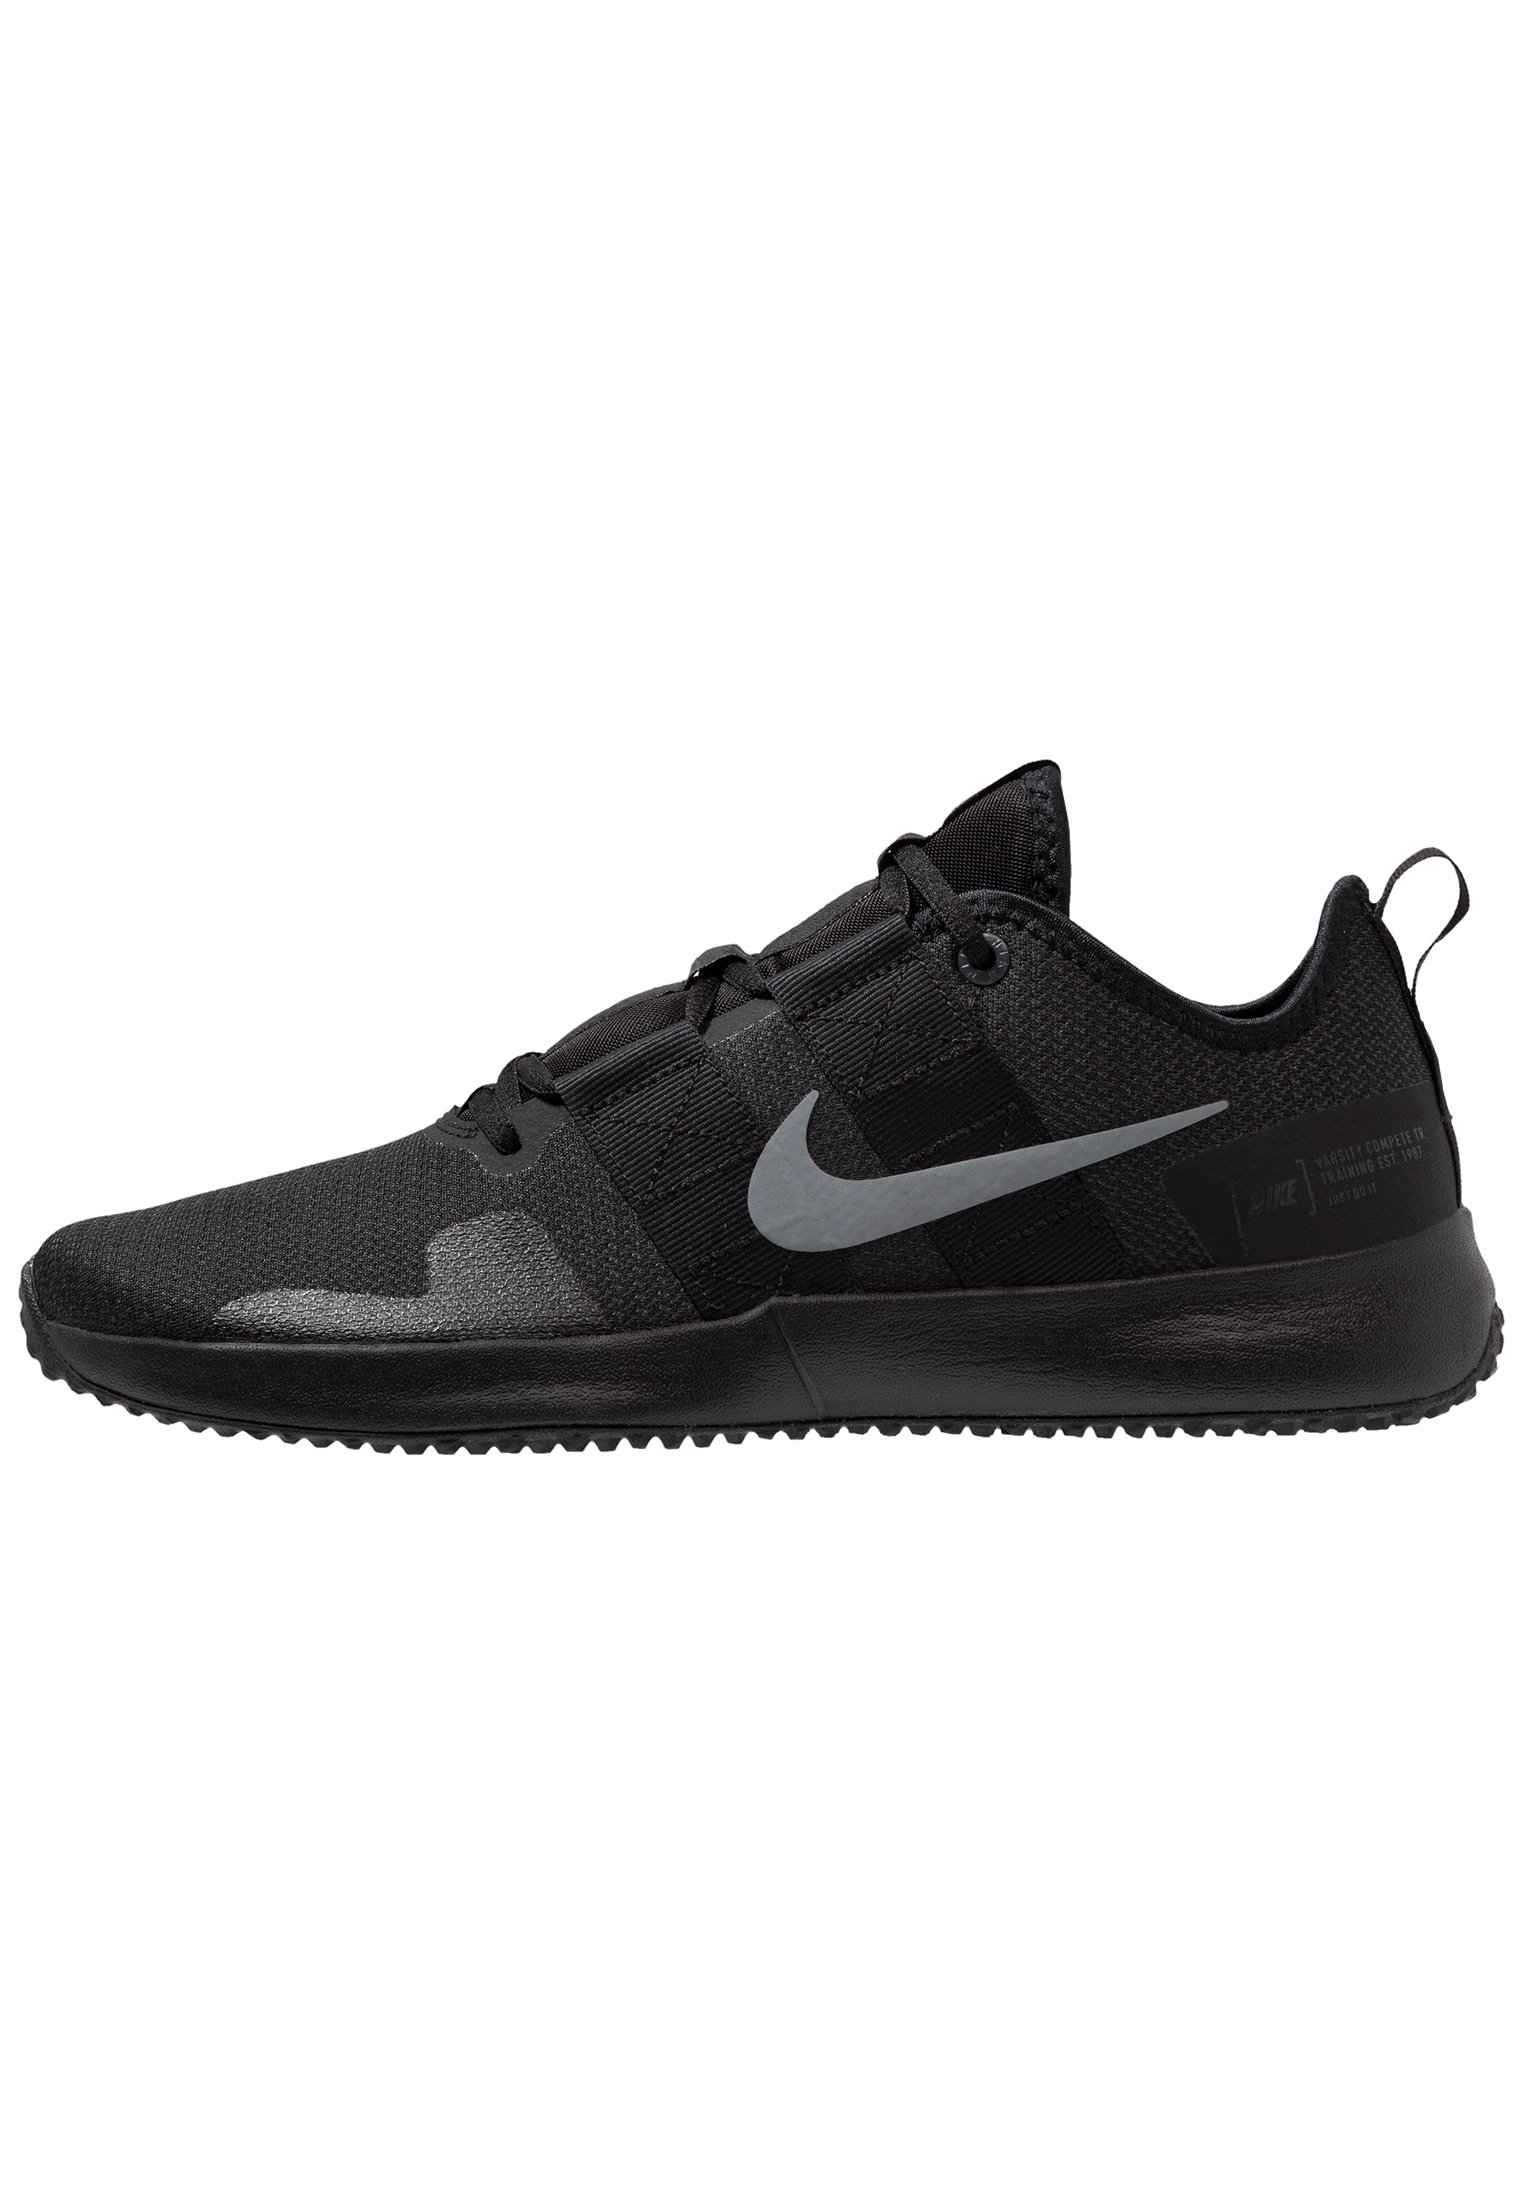 VARSITY COMPETE TRAINER 2 Trainings Fitnessschuh blackcool greyanthracite